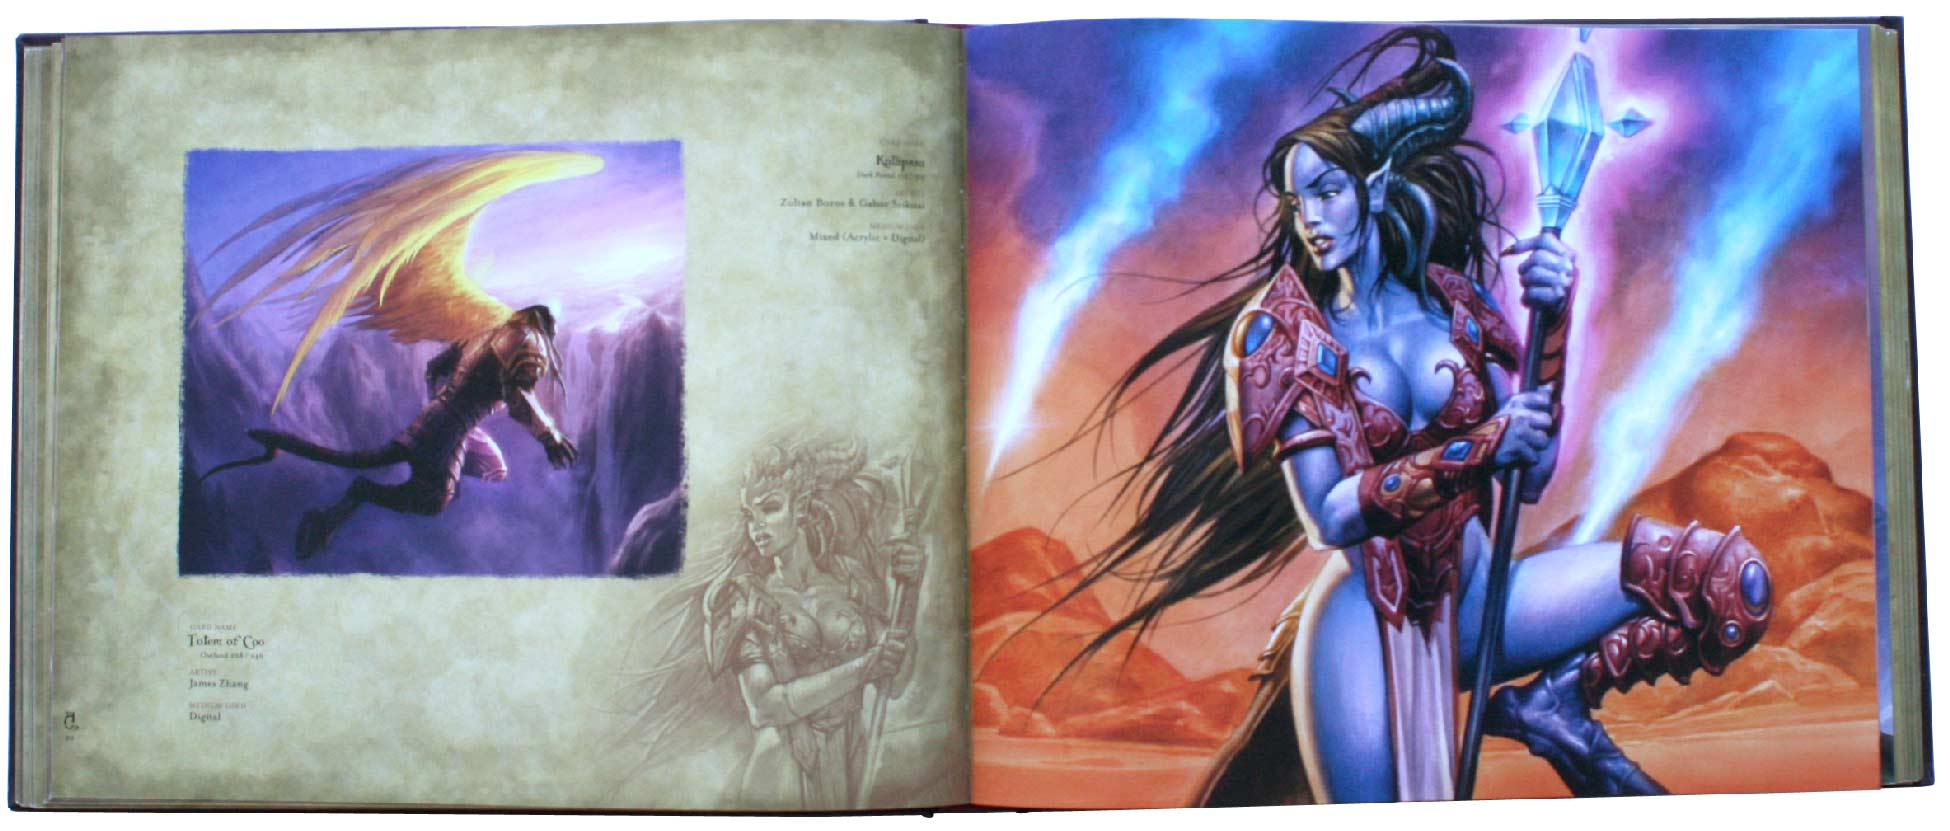 page 90 et 91 de l'art book : The Art of the Trading Card Game (World of Wacraft)